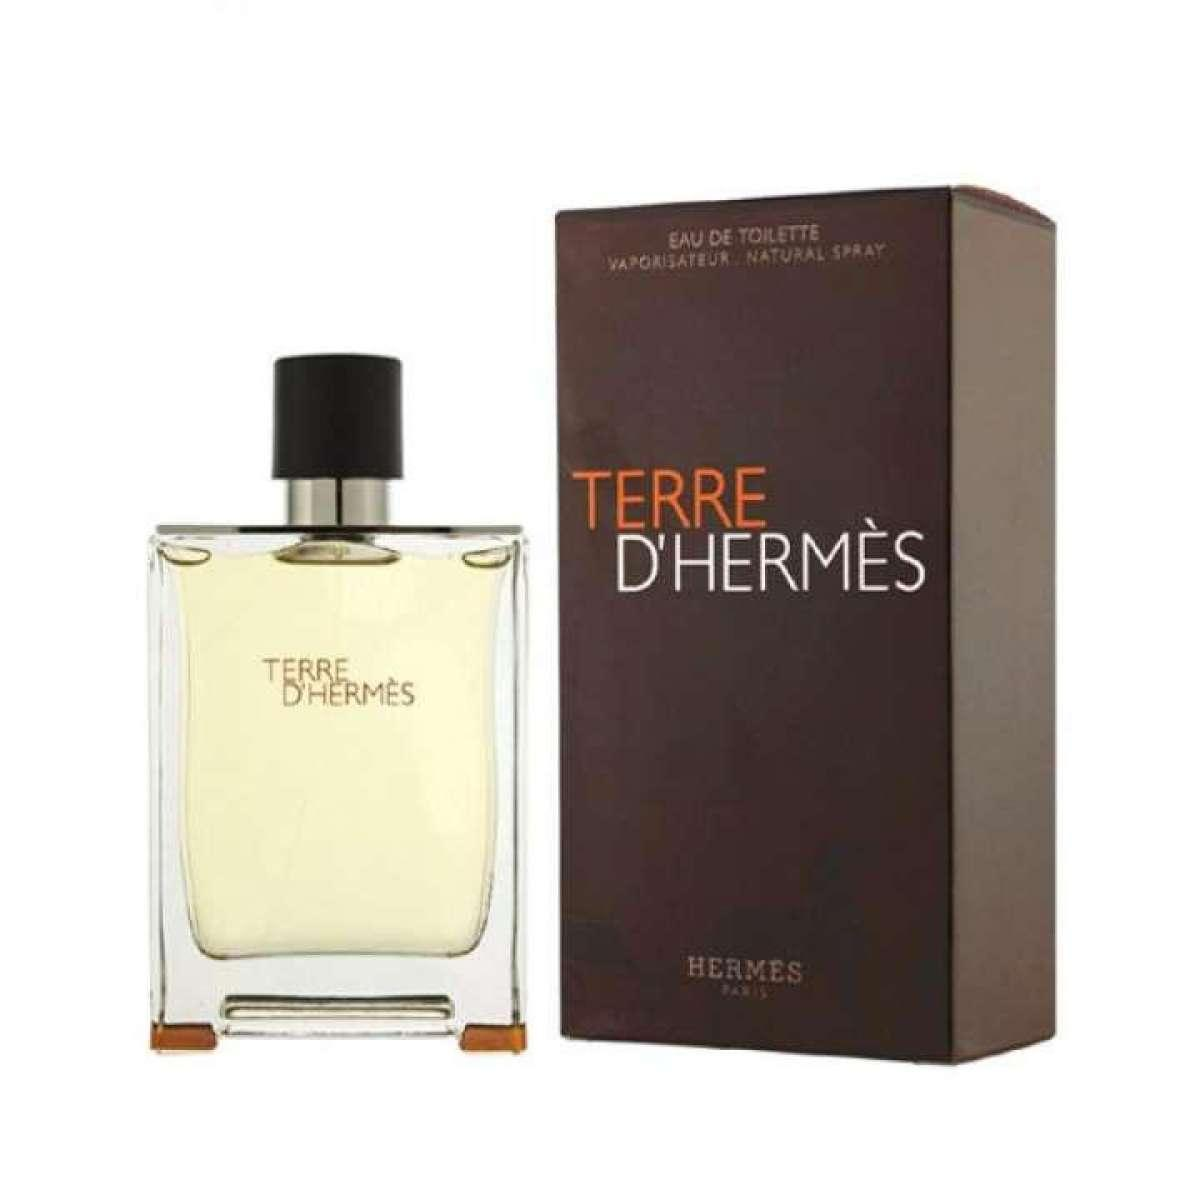 Buy Fashion Warehouse Fragrances At Best Prices Online In Pakistan